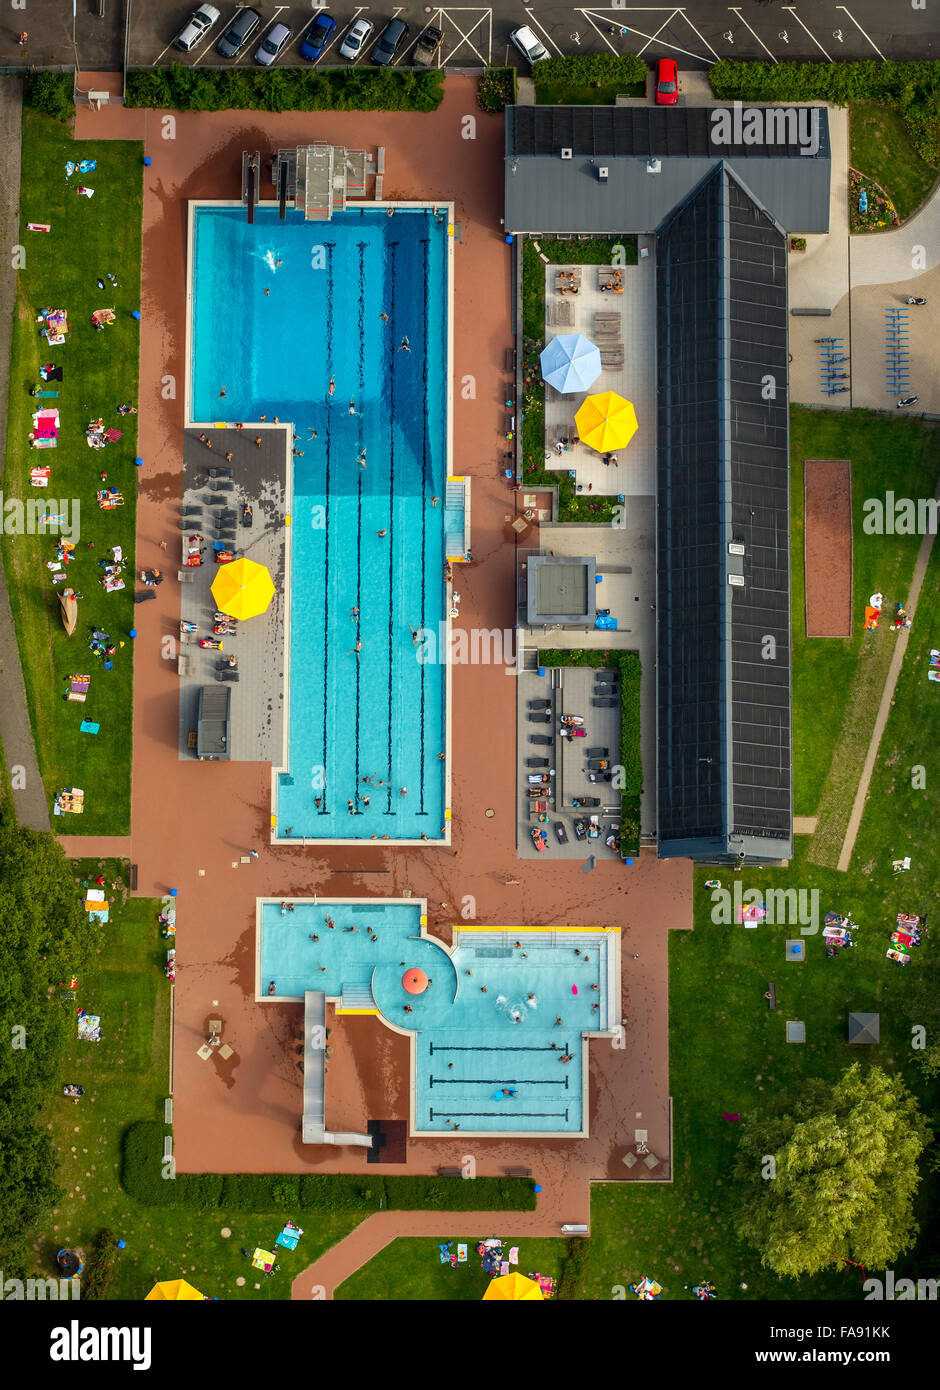 Swimmer's pool, parasols, Perpendicular Recording, Hot Water Outdoor Geisweid, Siegen, Siegerland, South Westphalia, - Stock Image